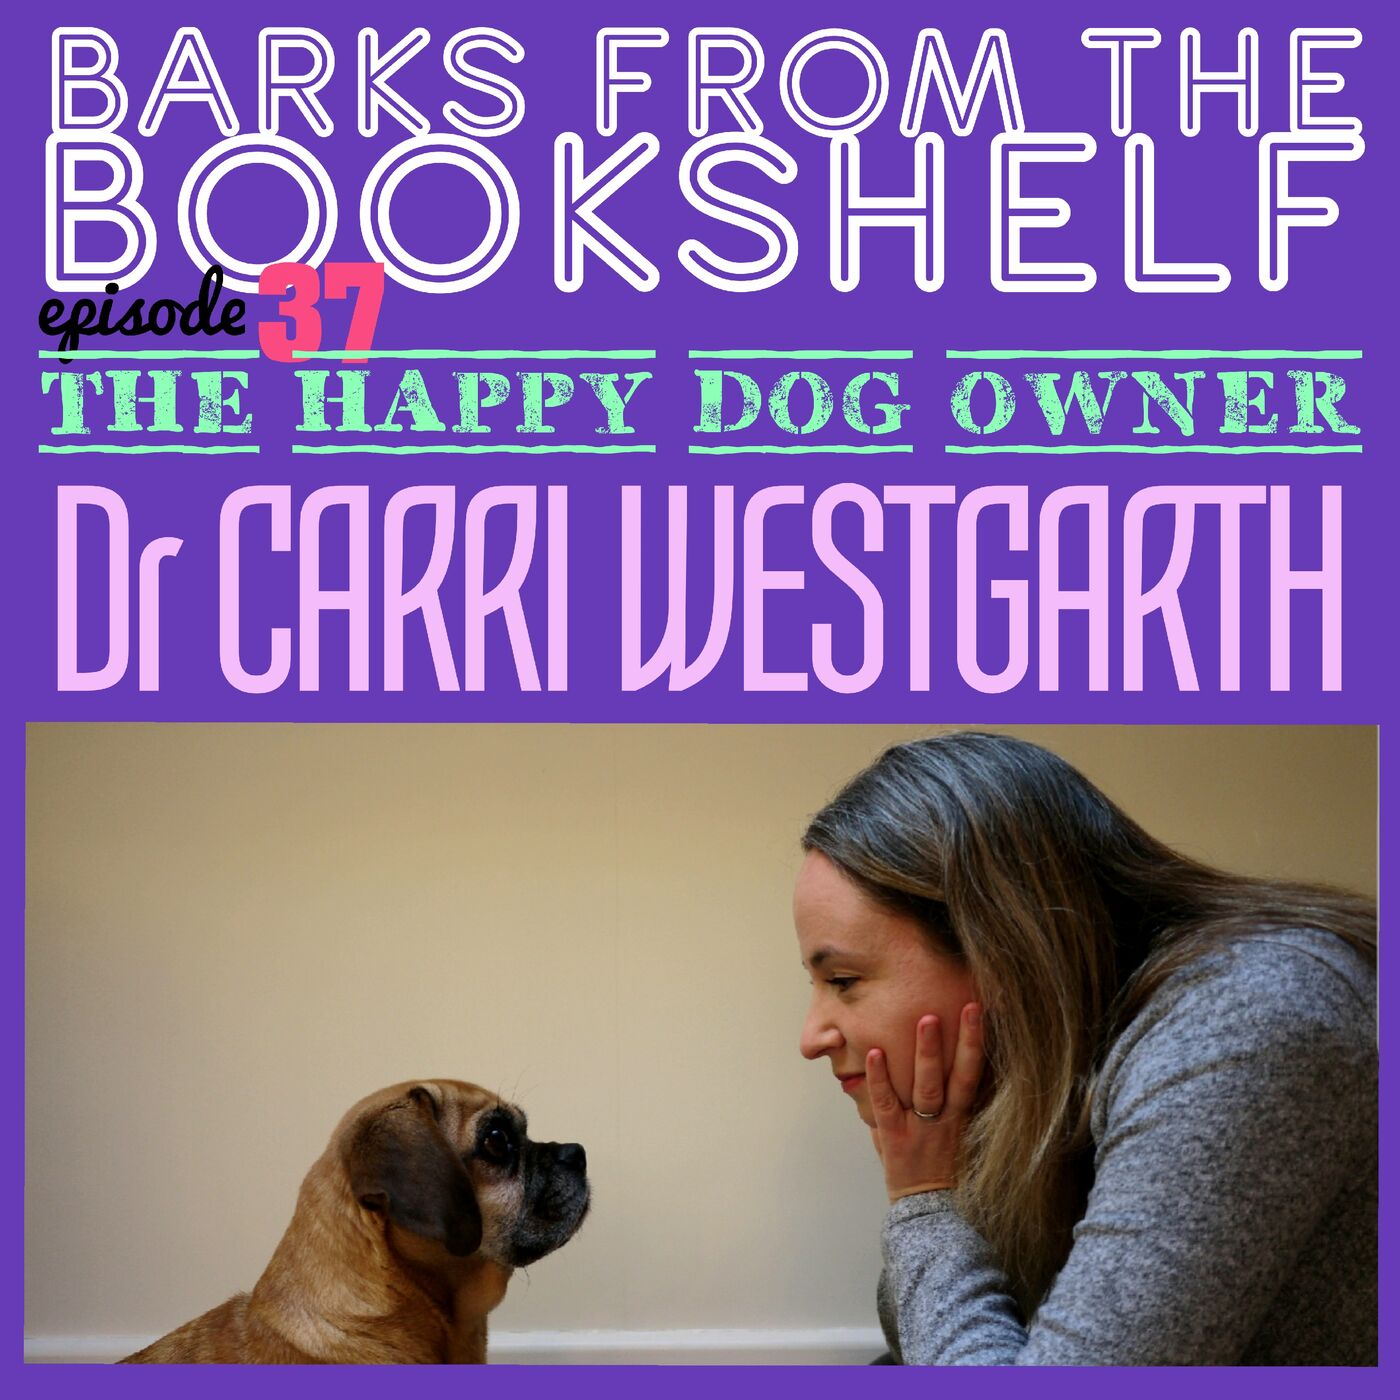 #37 Dr Carri Westgarth - The Happy Dog Owner: Finding Health & Happiness With The Help Of Your Dog